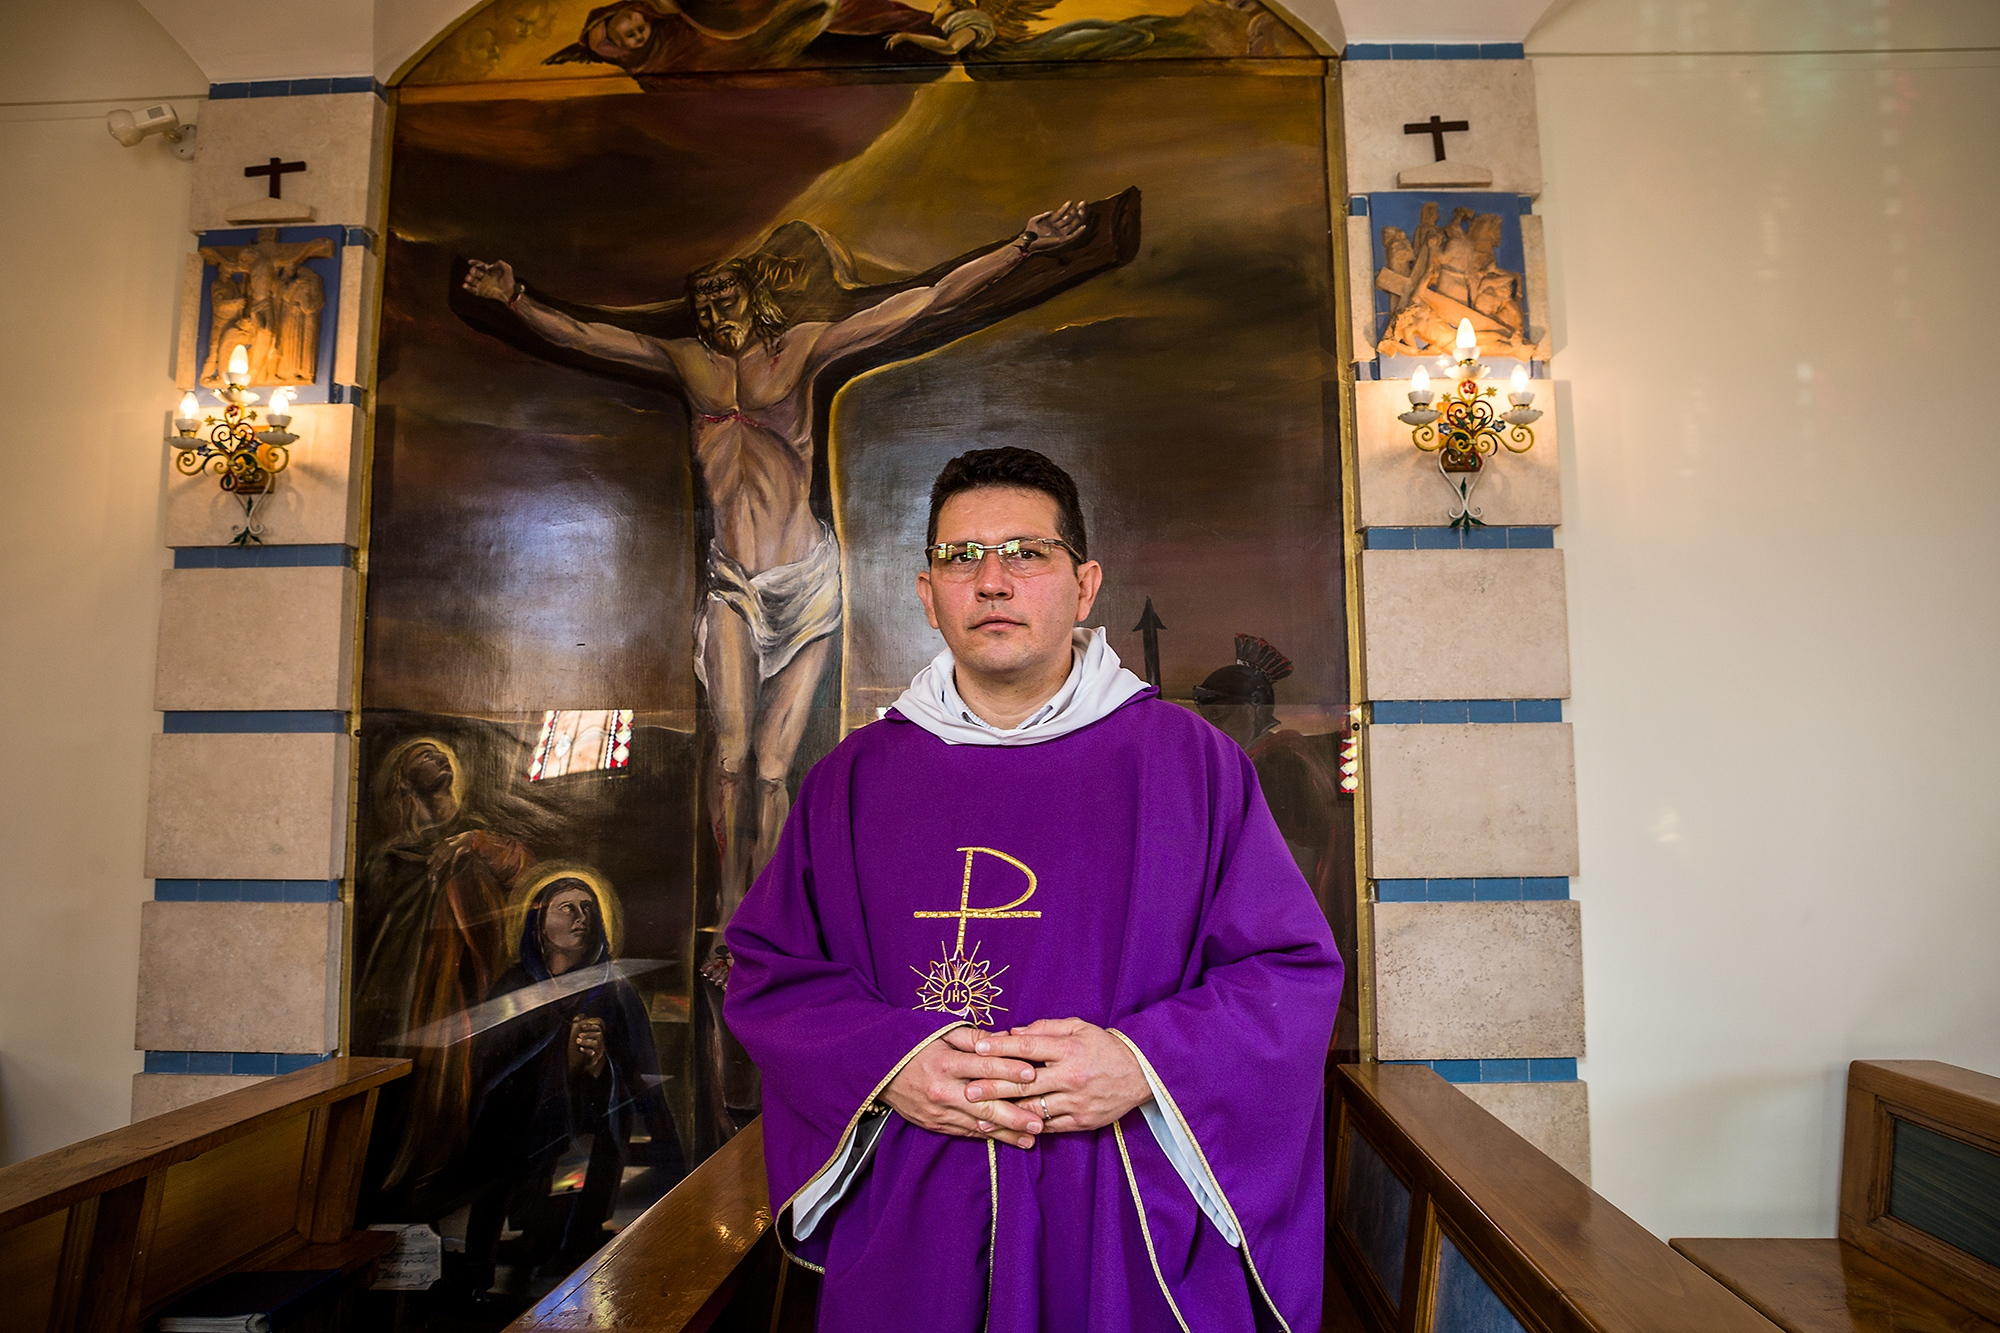 Padre Carlos is the leader of the local church that serves the very few residents of the area